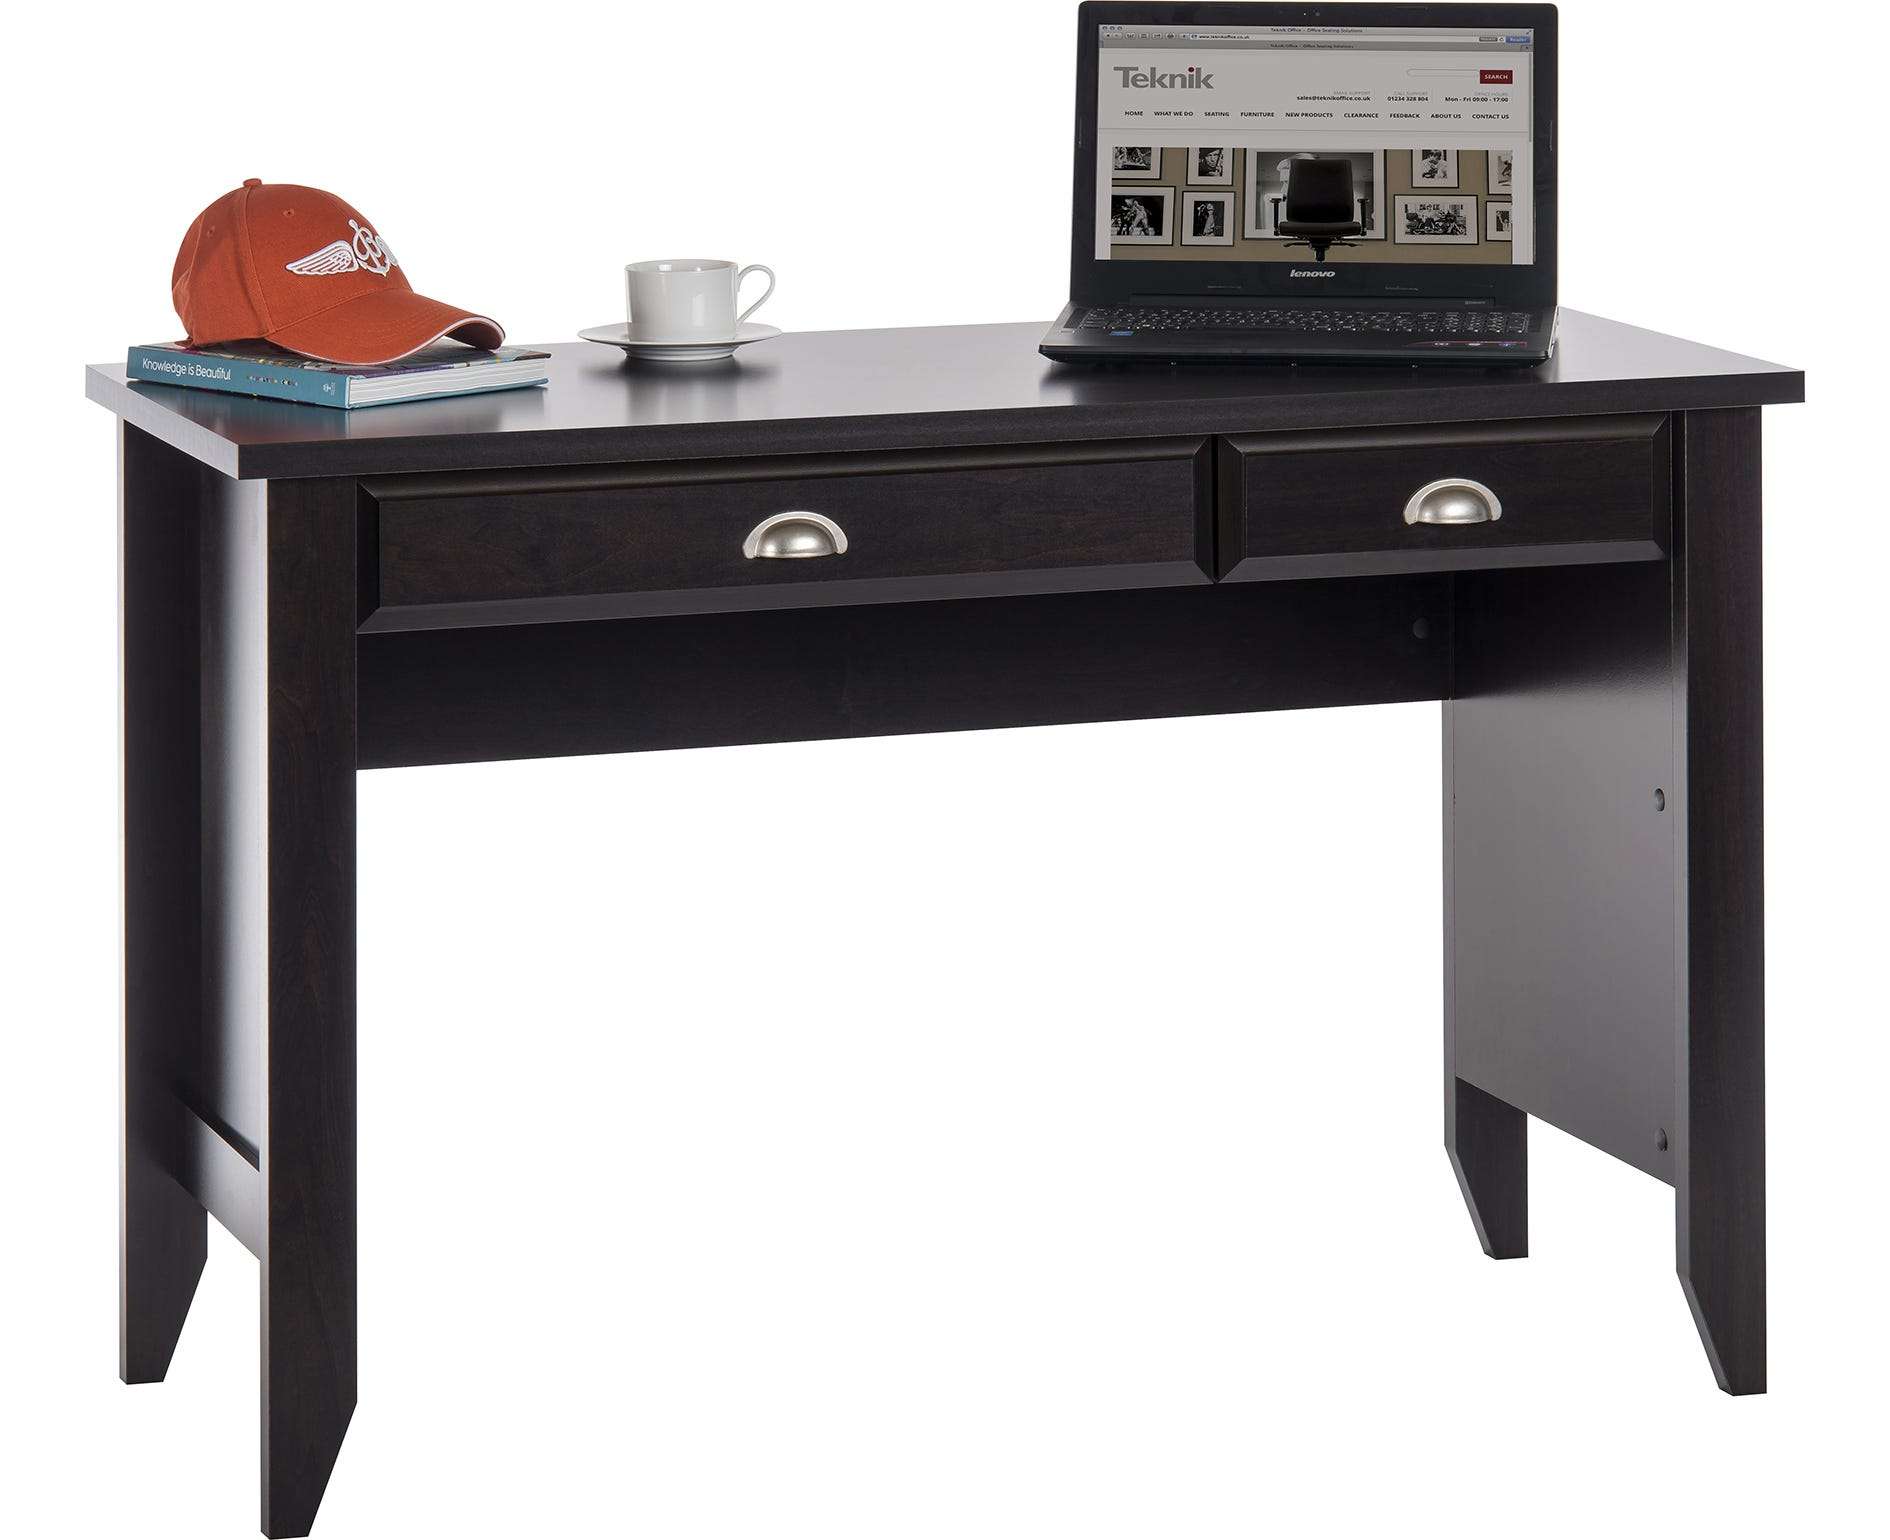 Home Office Laptop Desk, Jamocha Wood